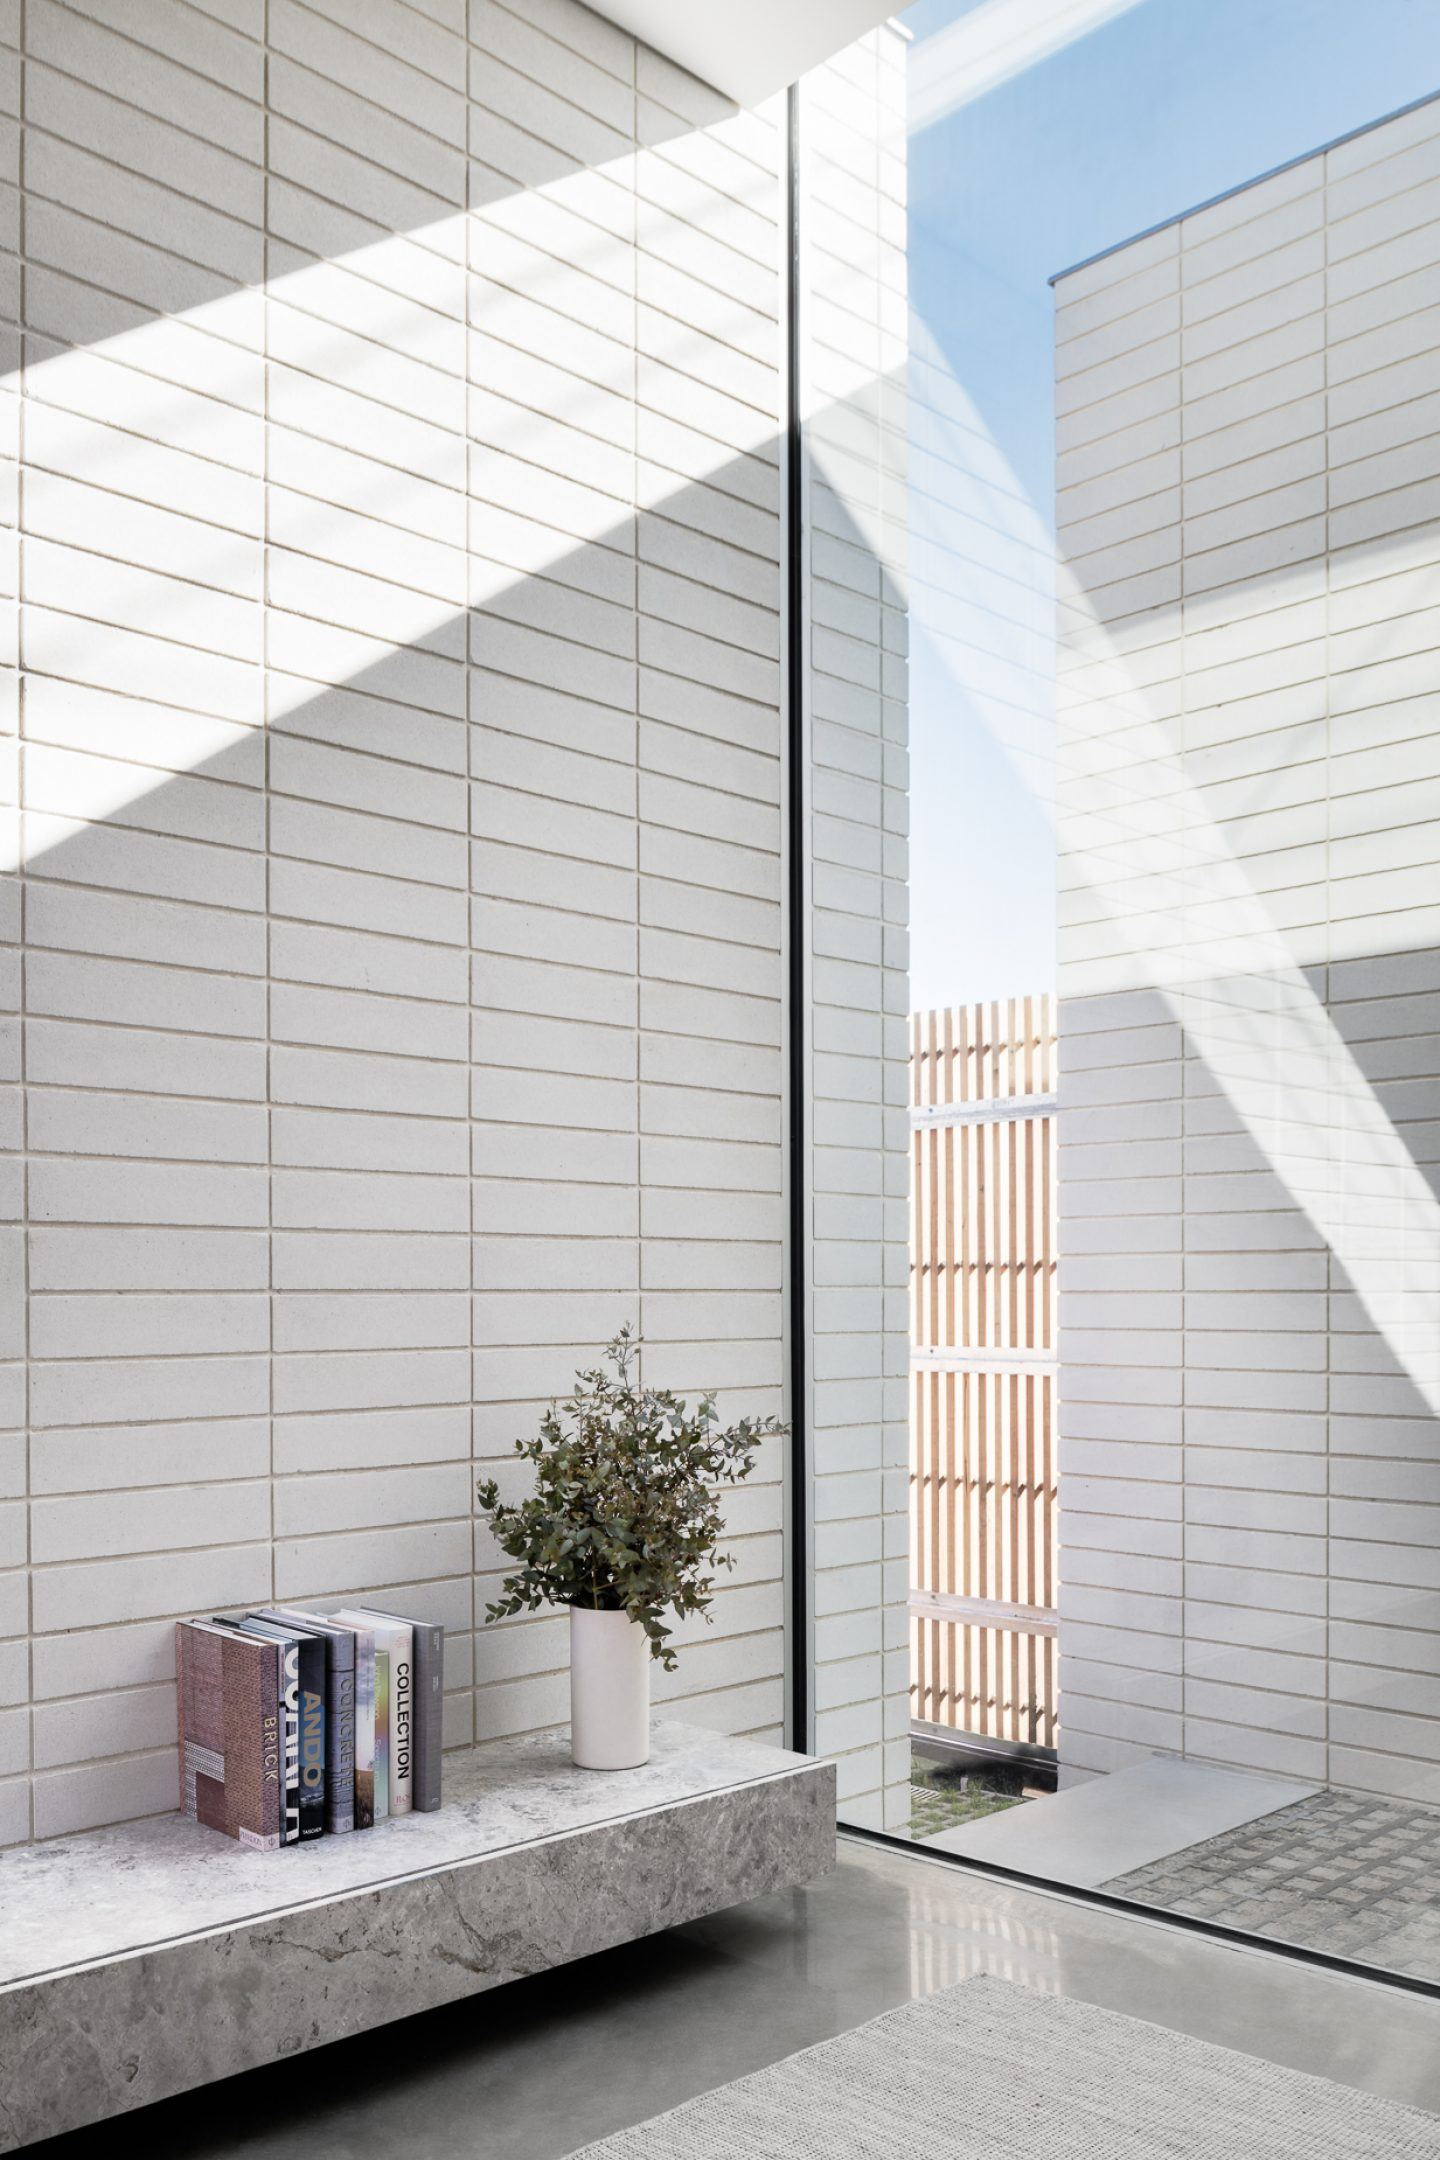 IGNANT-Architecture-Ritz-Ghougassian-Edsall-Street-08